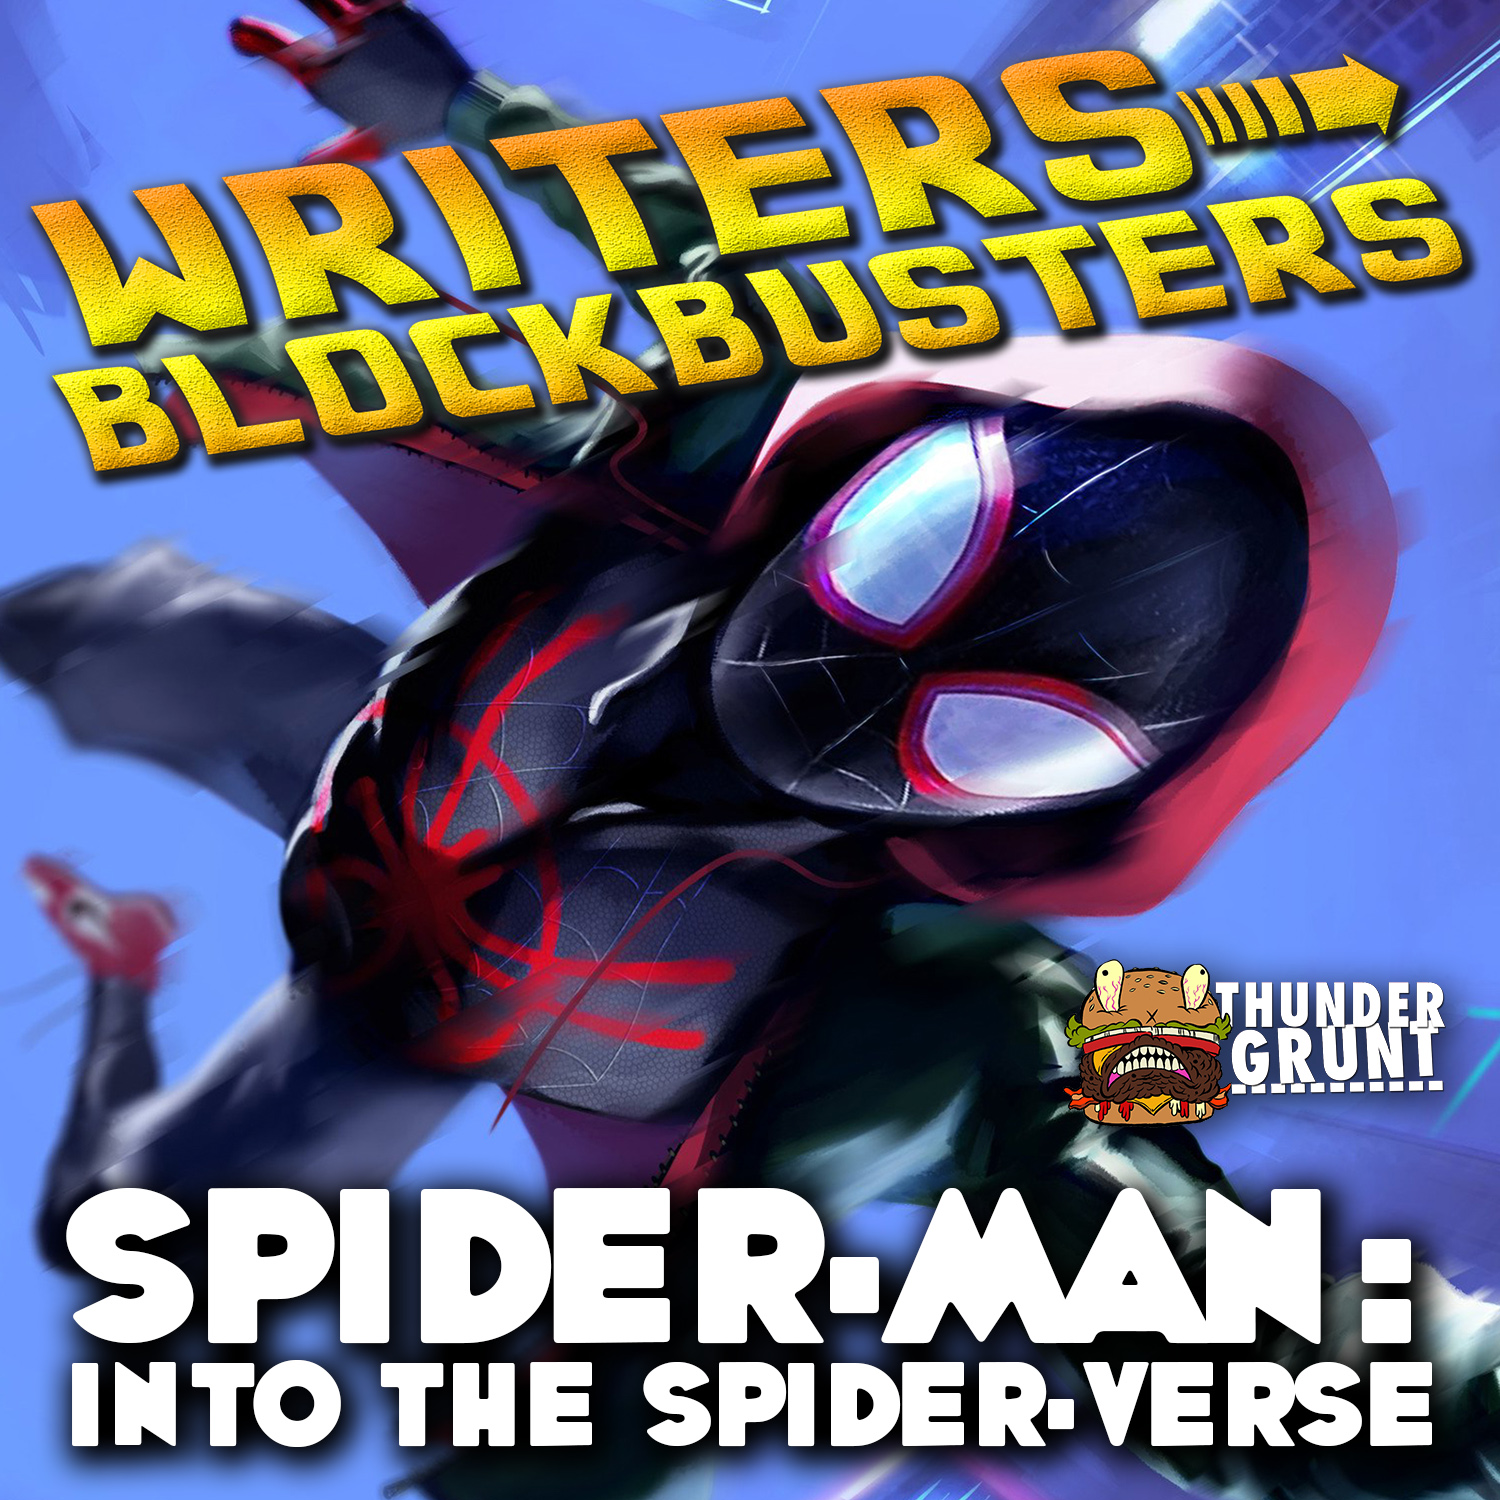 WRITERS/BLOCKBUSTERS 023 | SPIDER-MAN: INTO THE SPIDER-VERSE